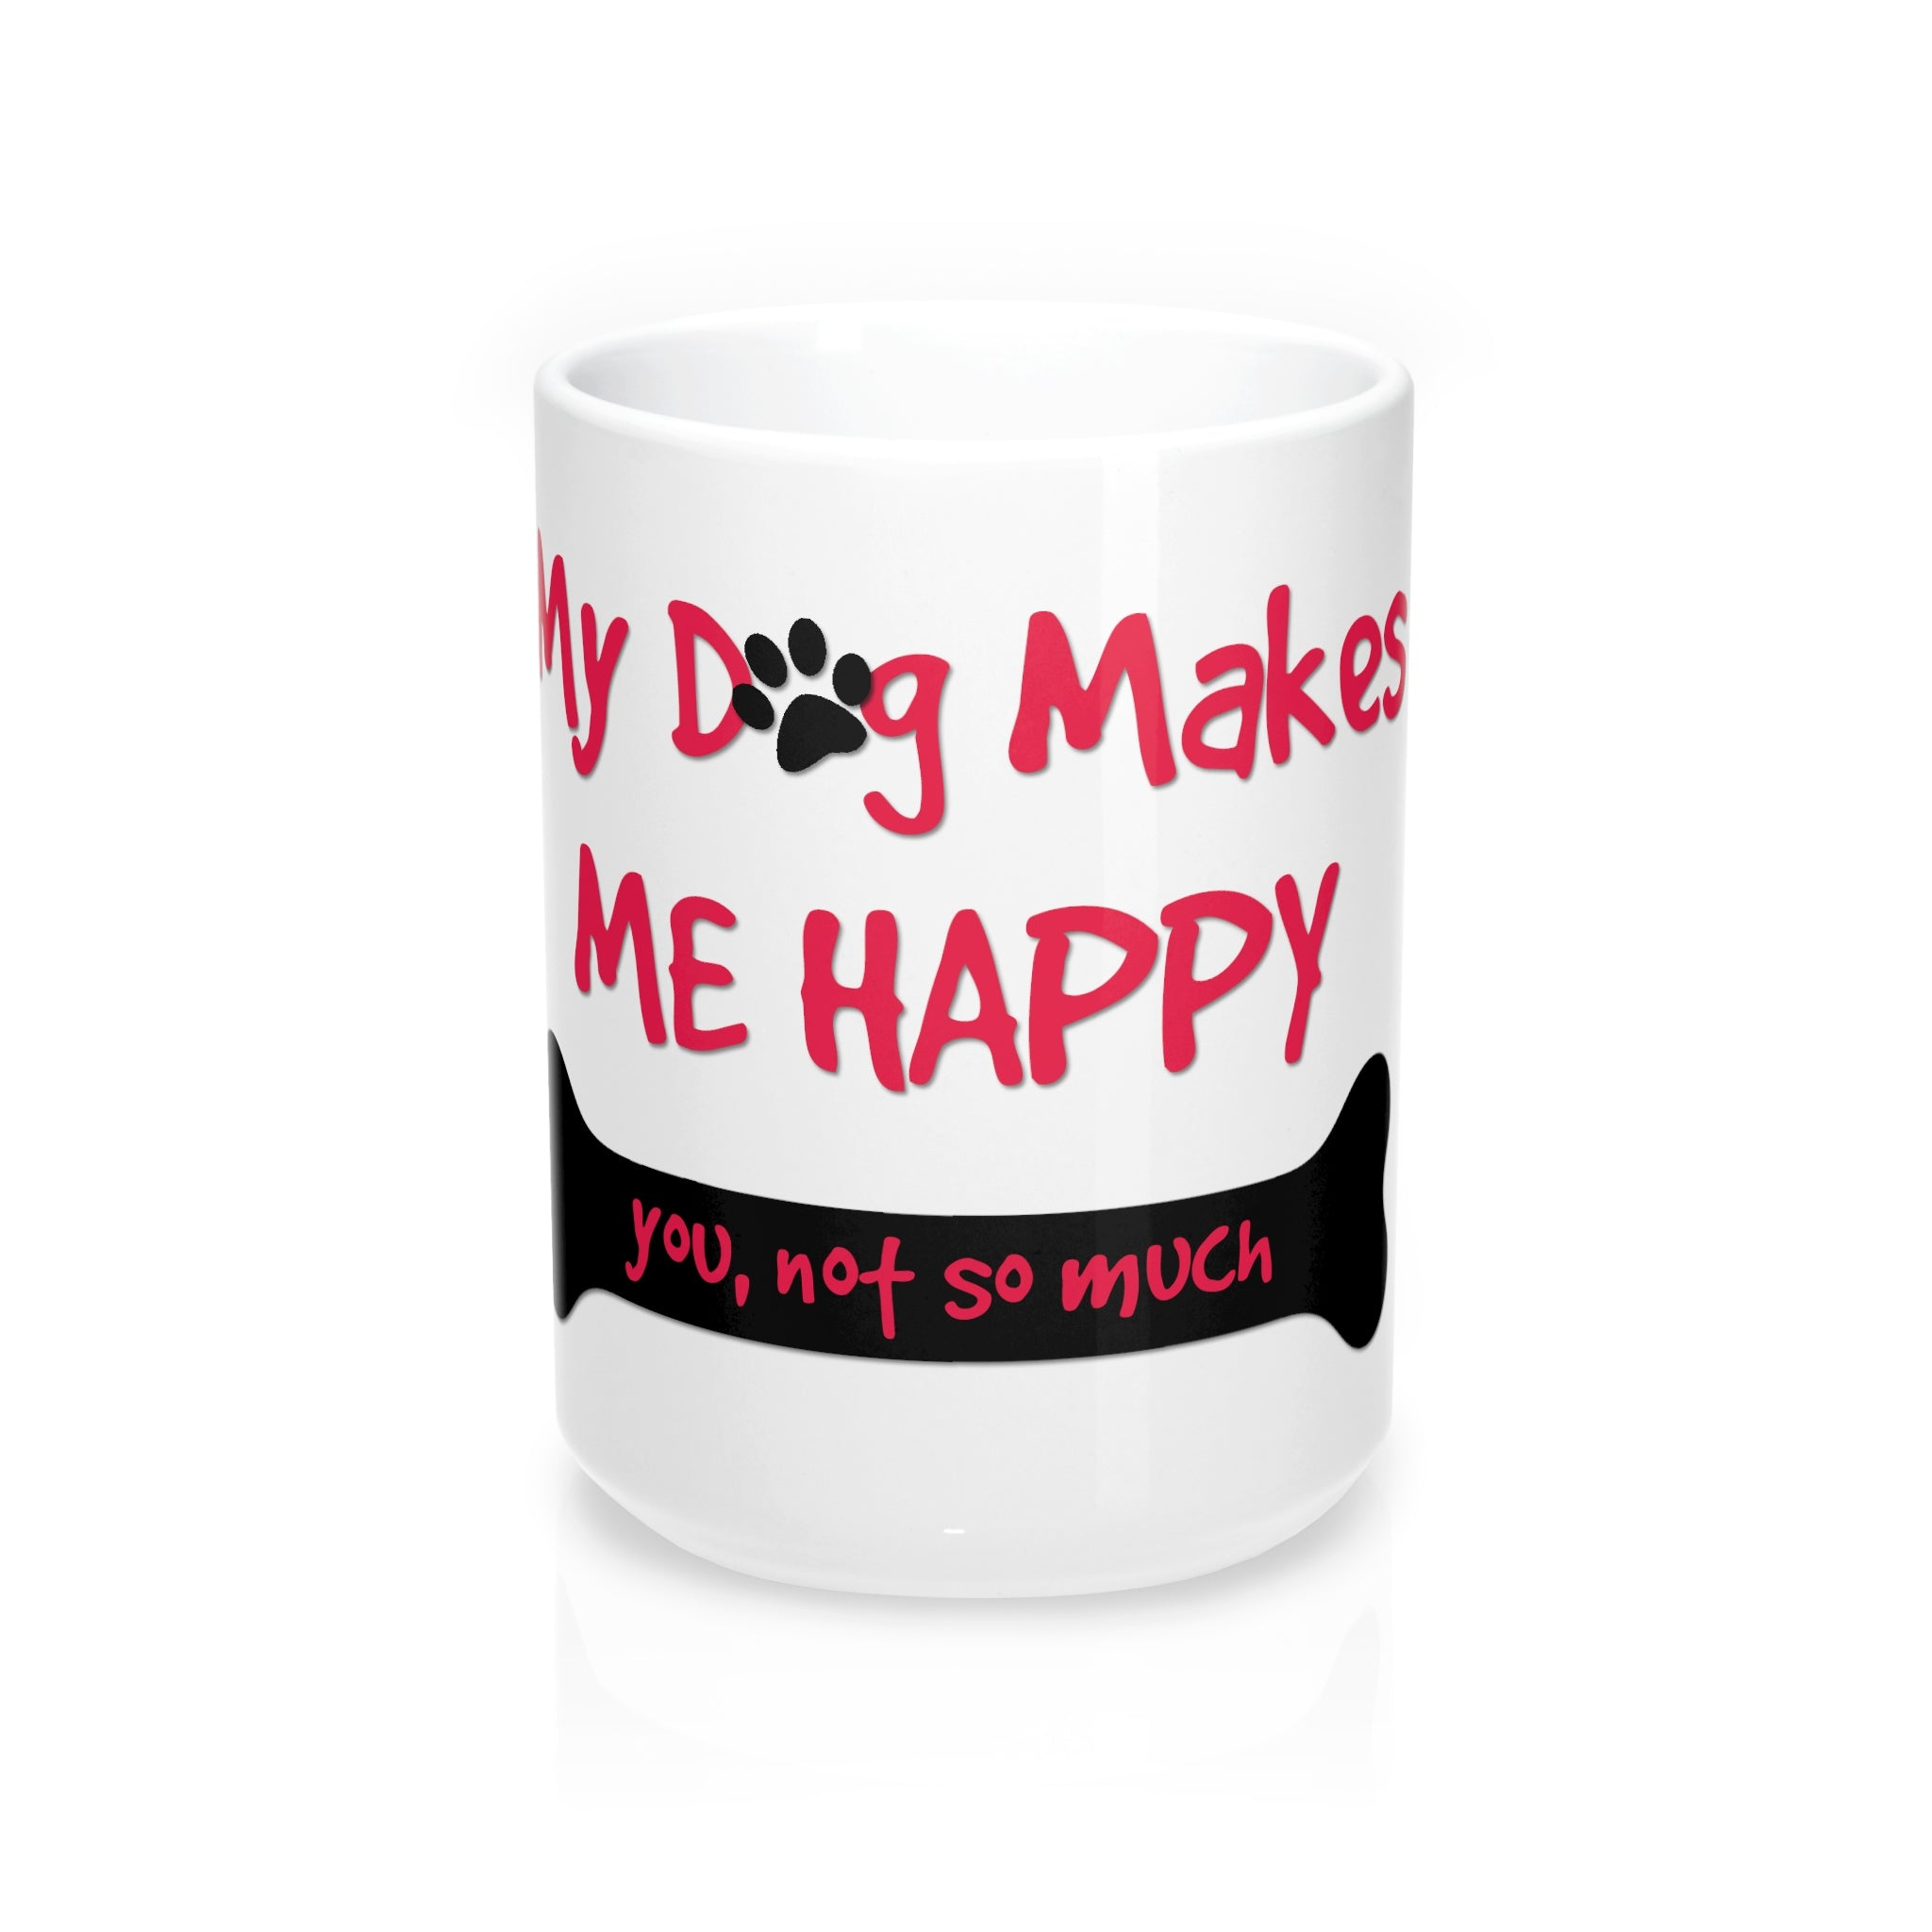 My dog makes me happy you, not so much Mug